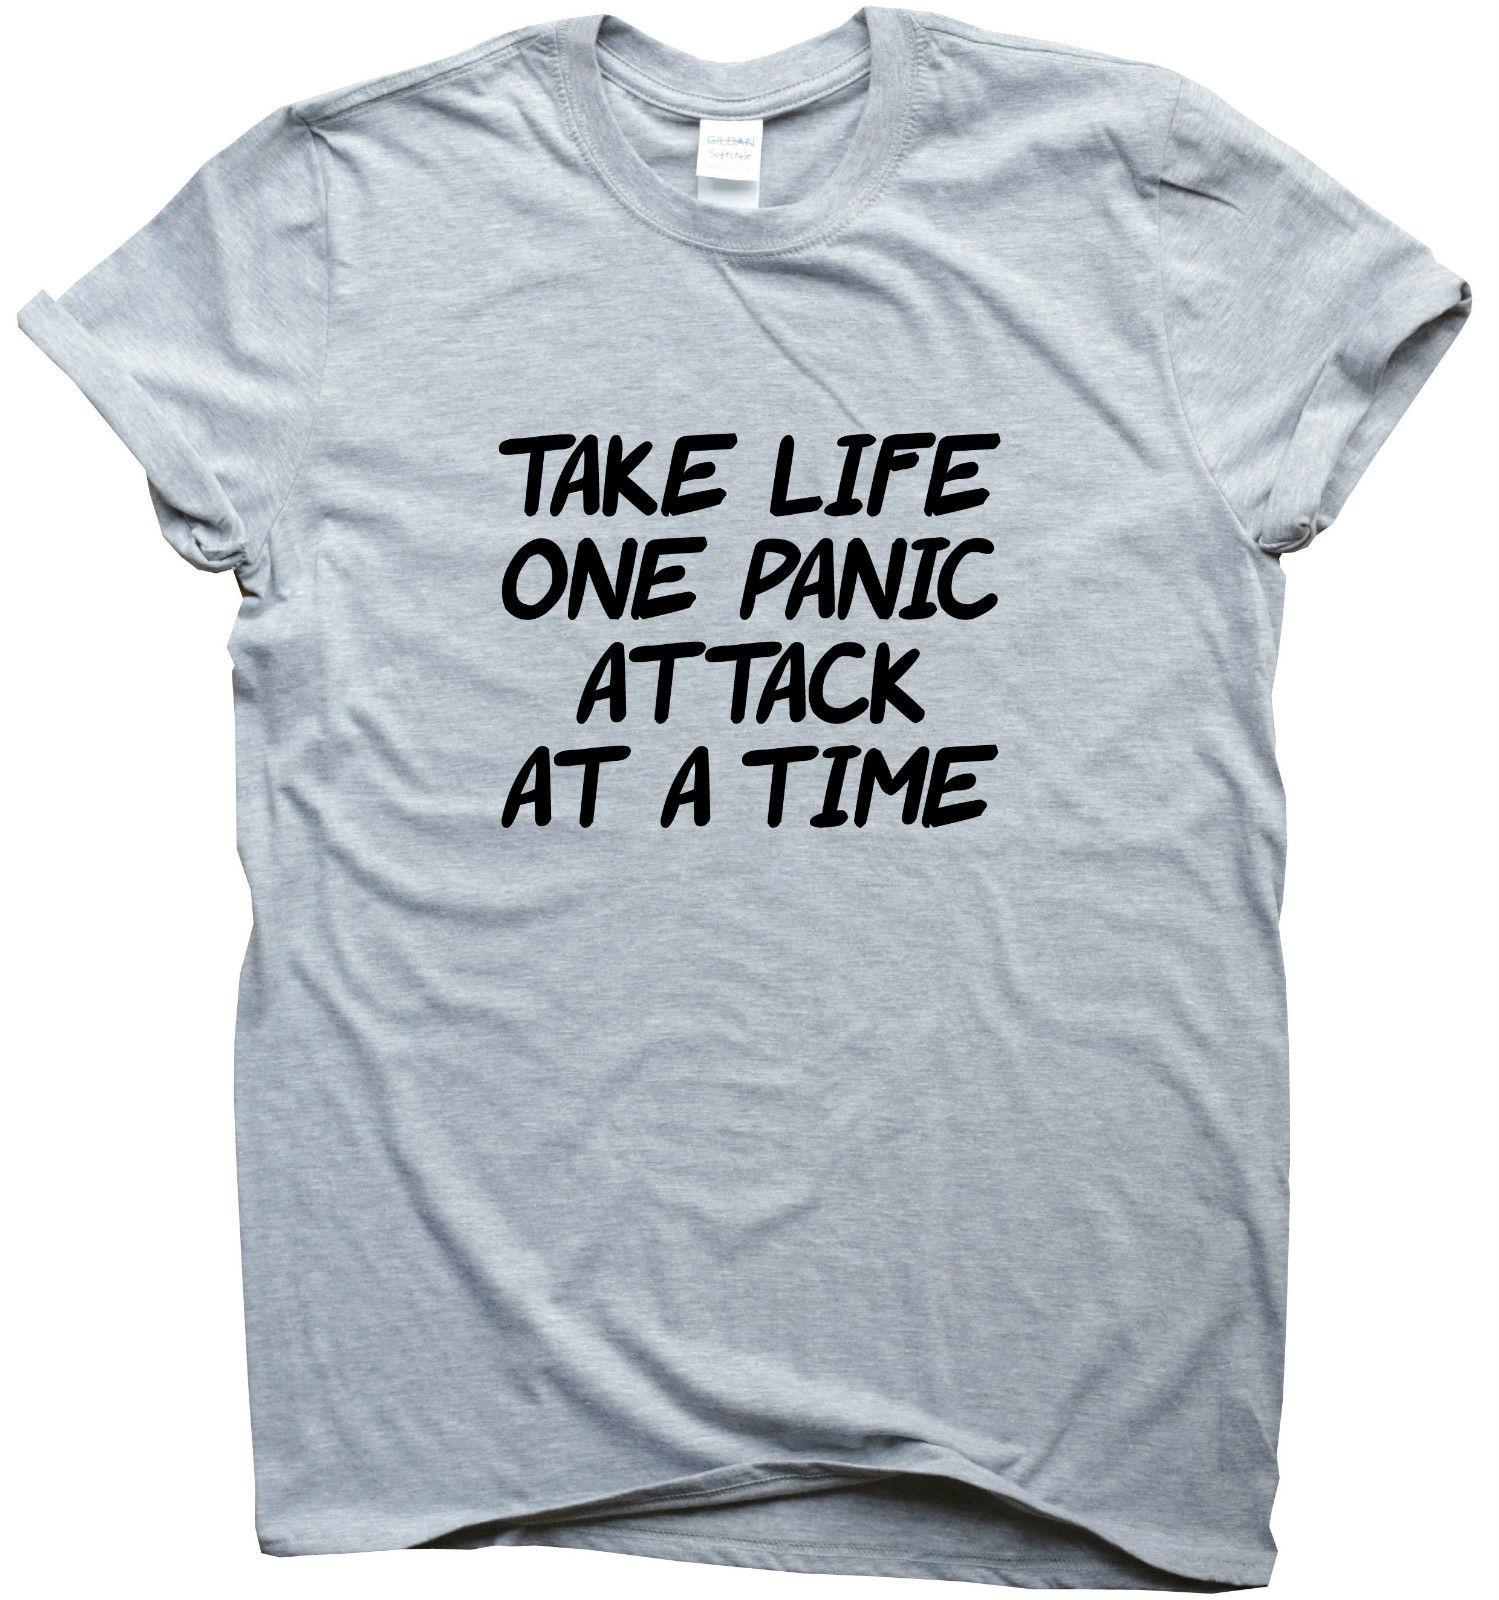 TAKE LIFE ONE PANIC ATTACK AT A TIME Funny t shirt printed humour gift for men